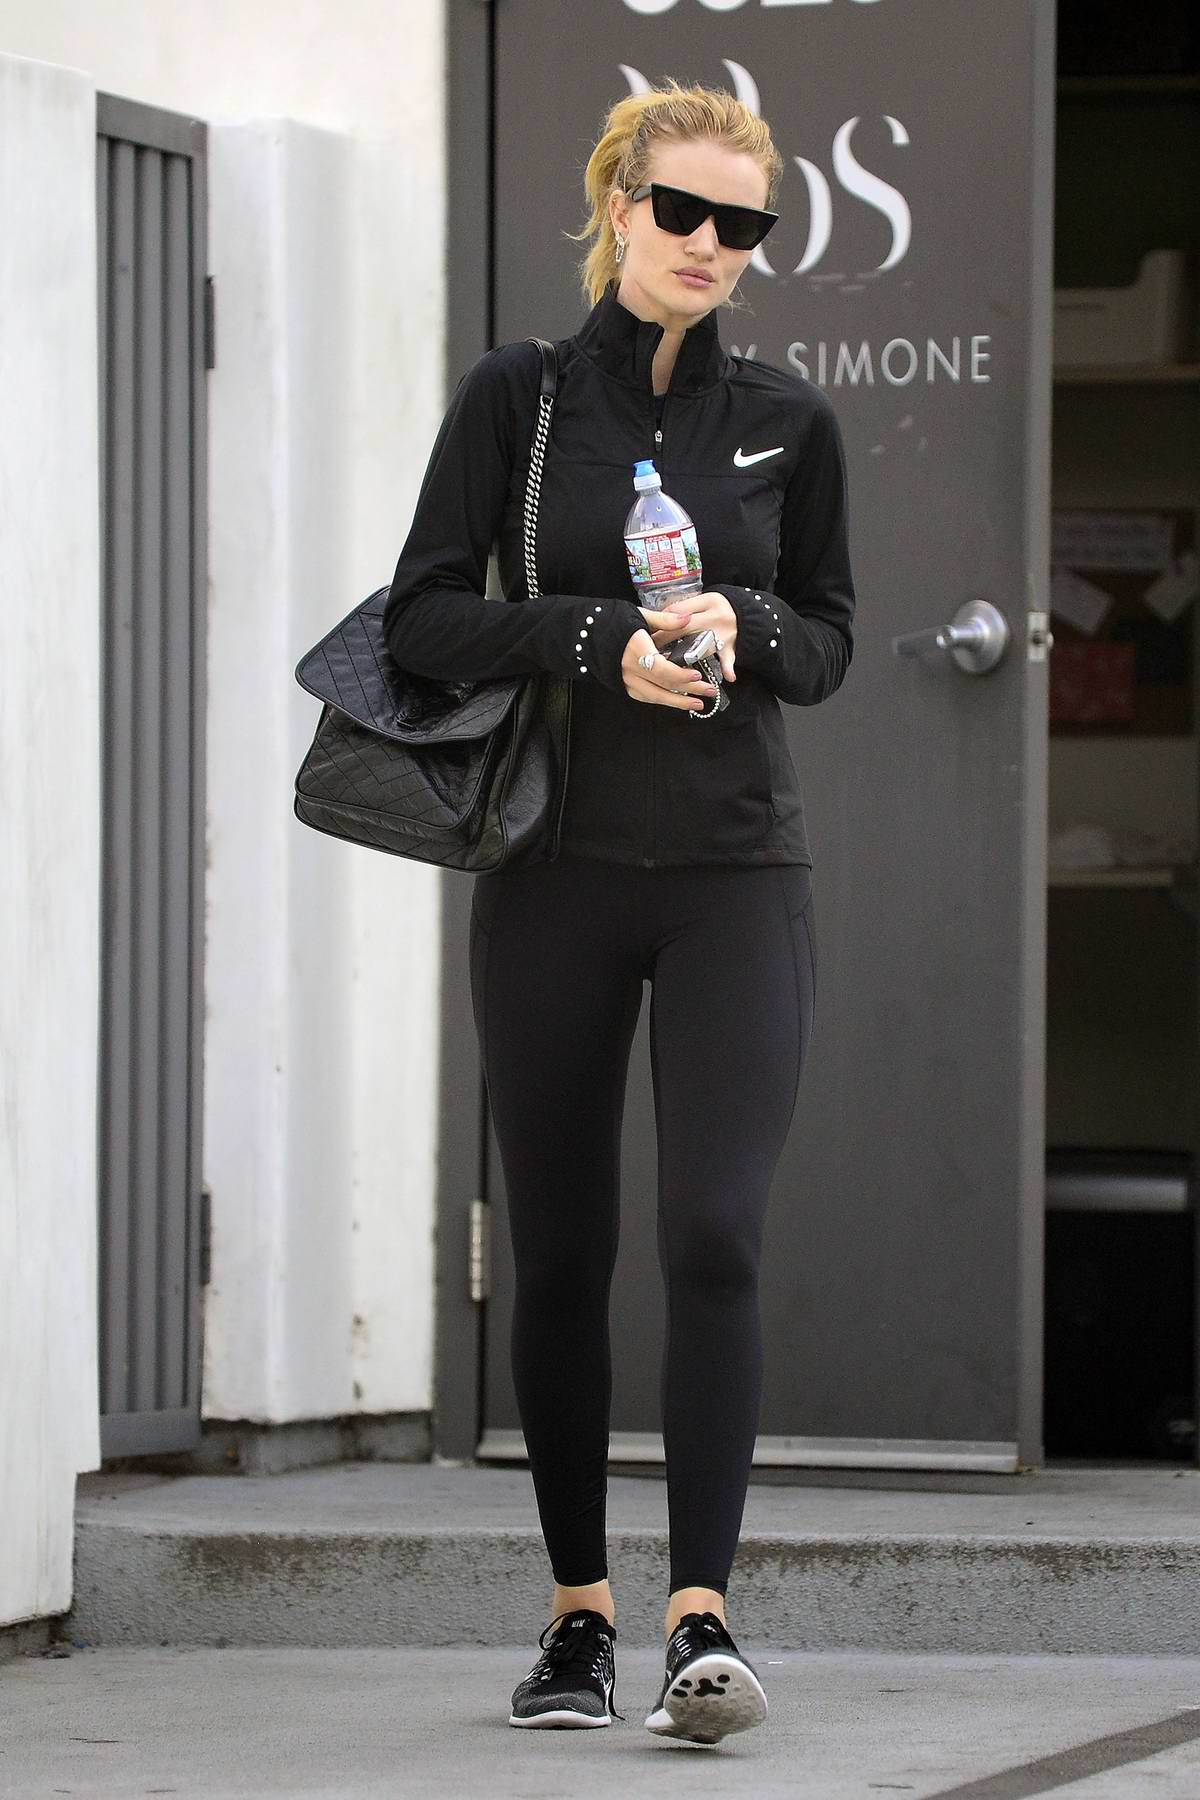 Rosie Huntington-Whiteley leaving after a workout session at Body By Simone in Los Angeles